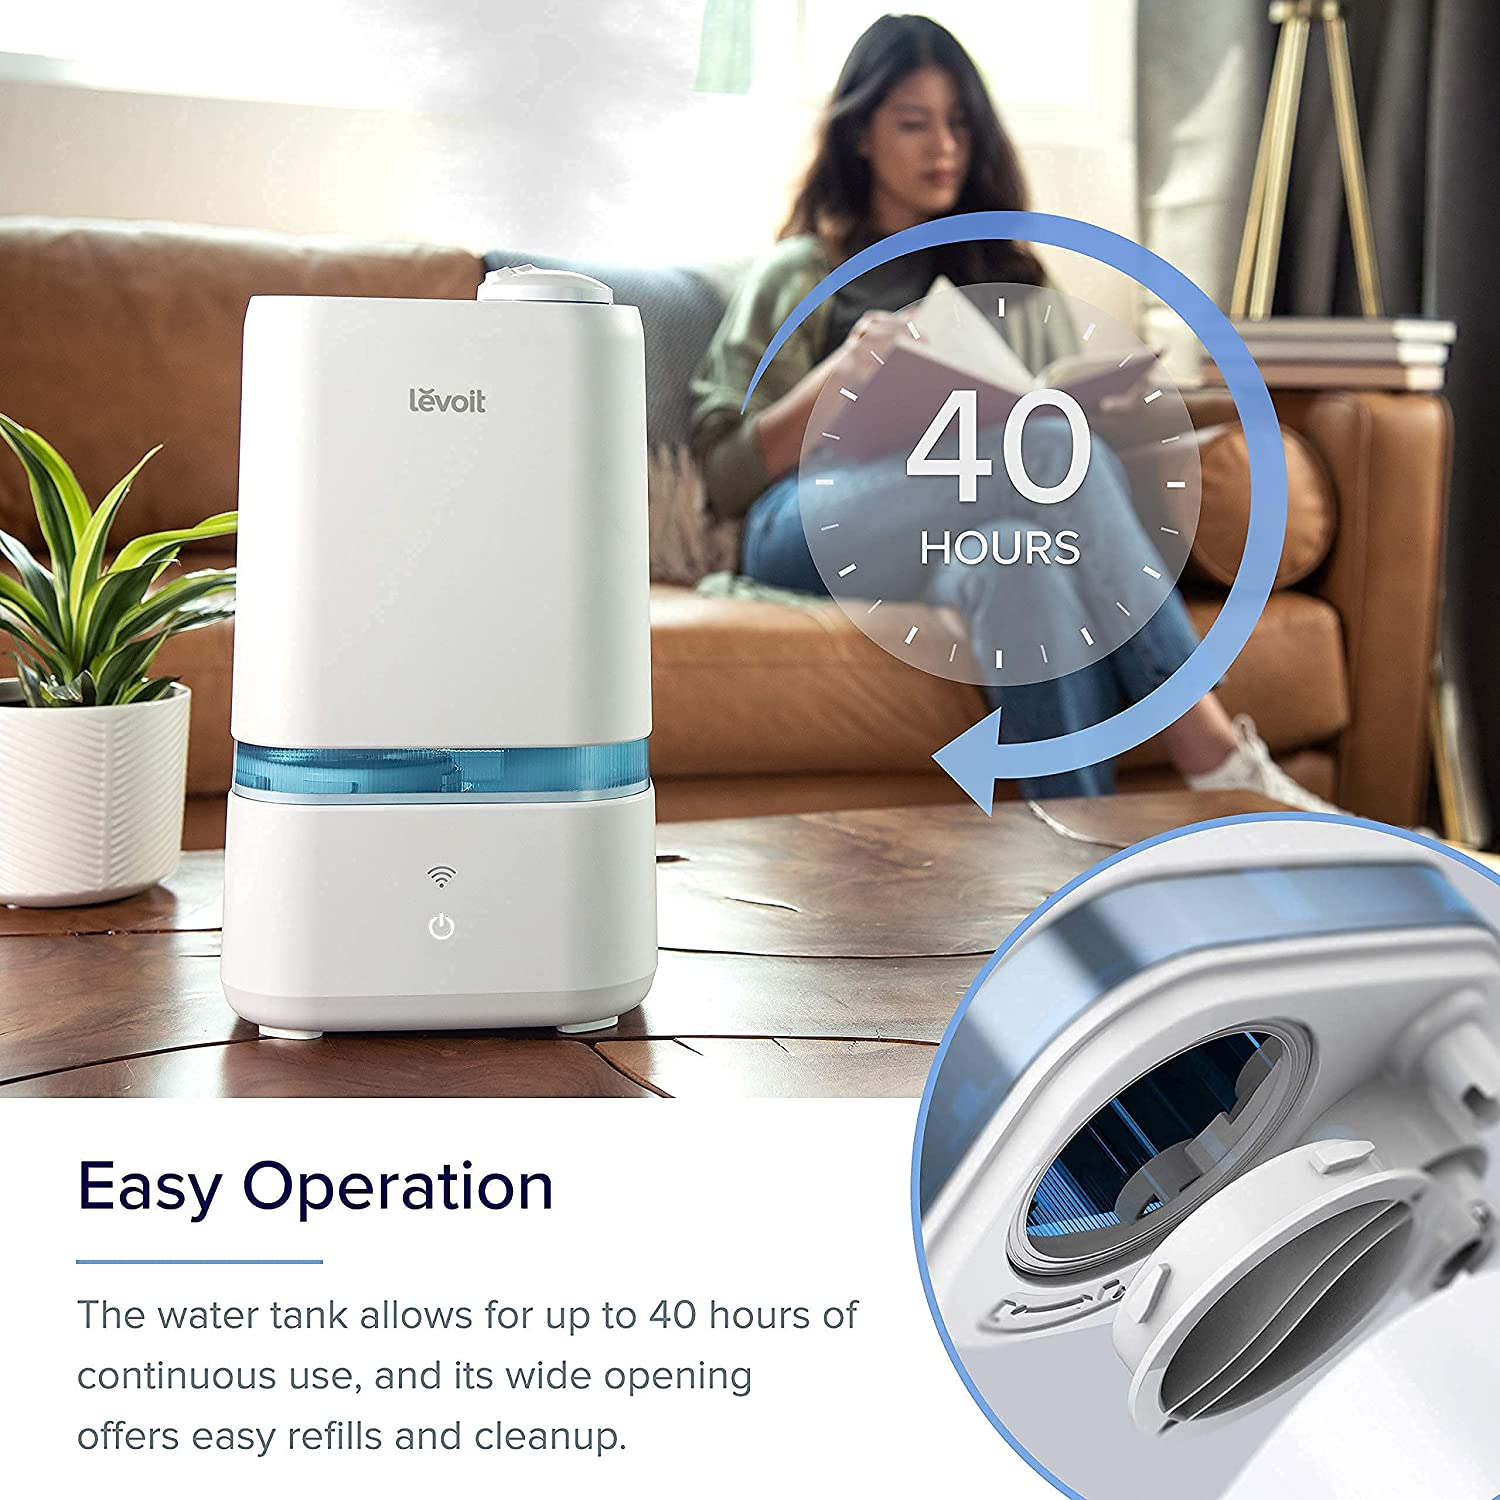 What Kind Of Humidifier is Best For Baby in 2021? [Detailed Guide]